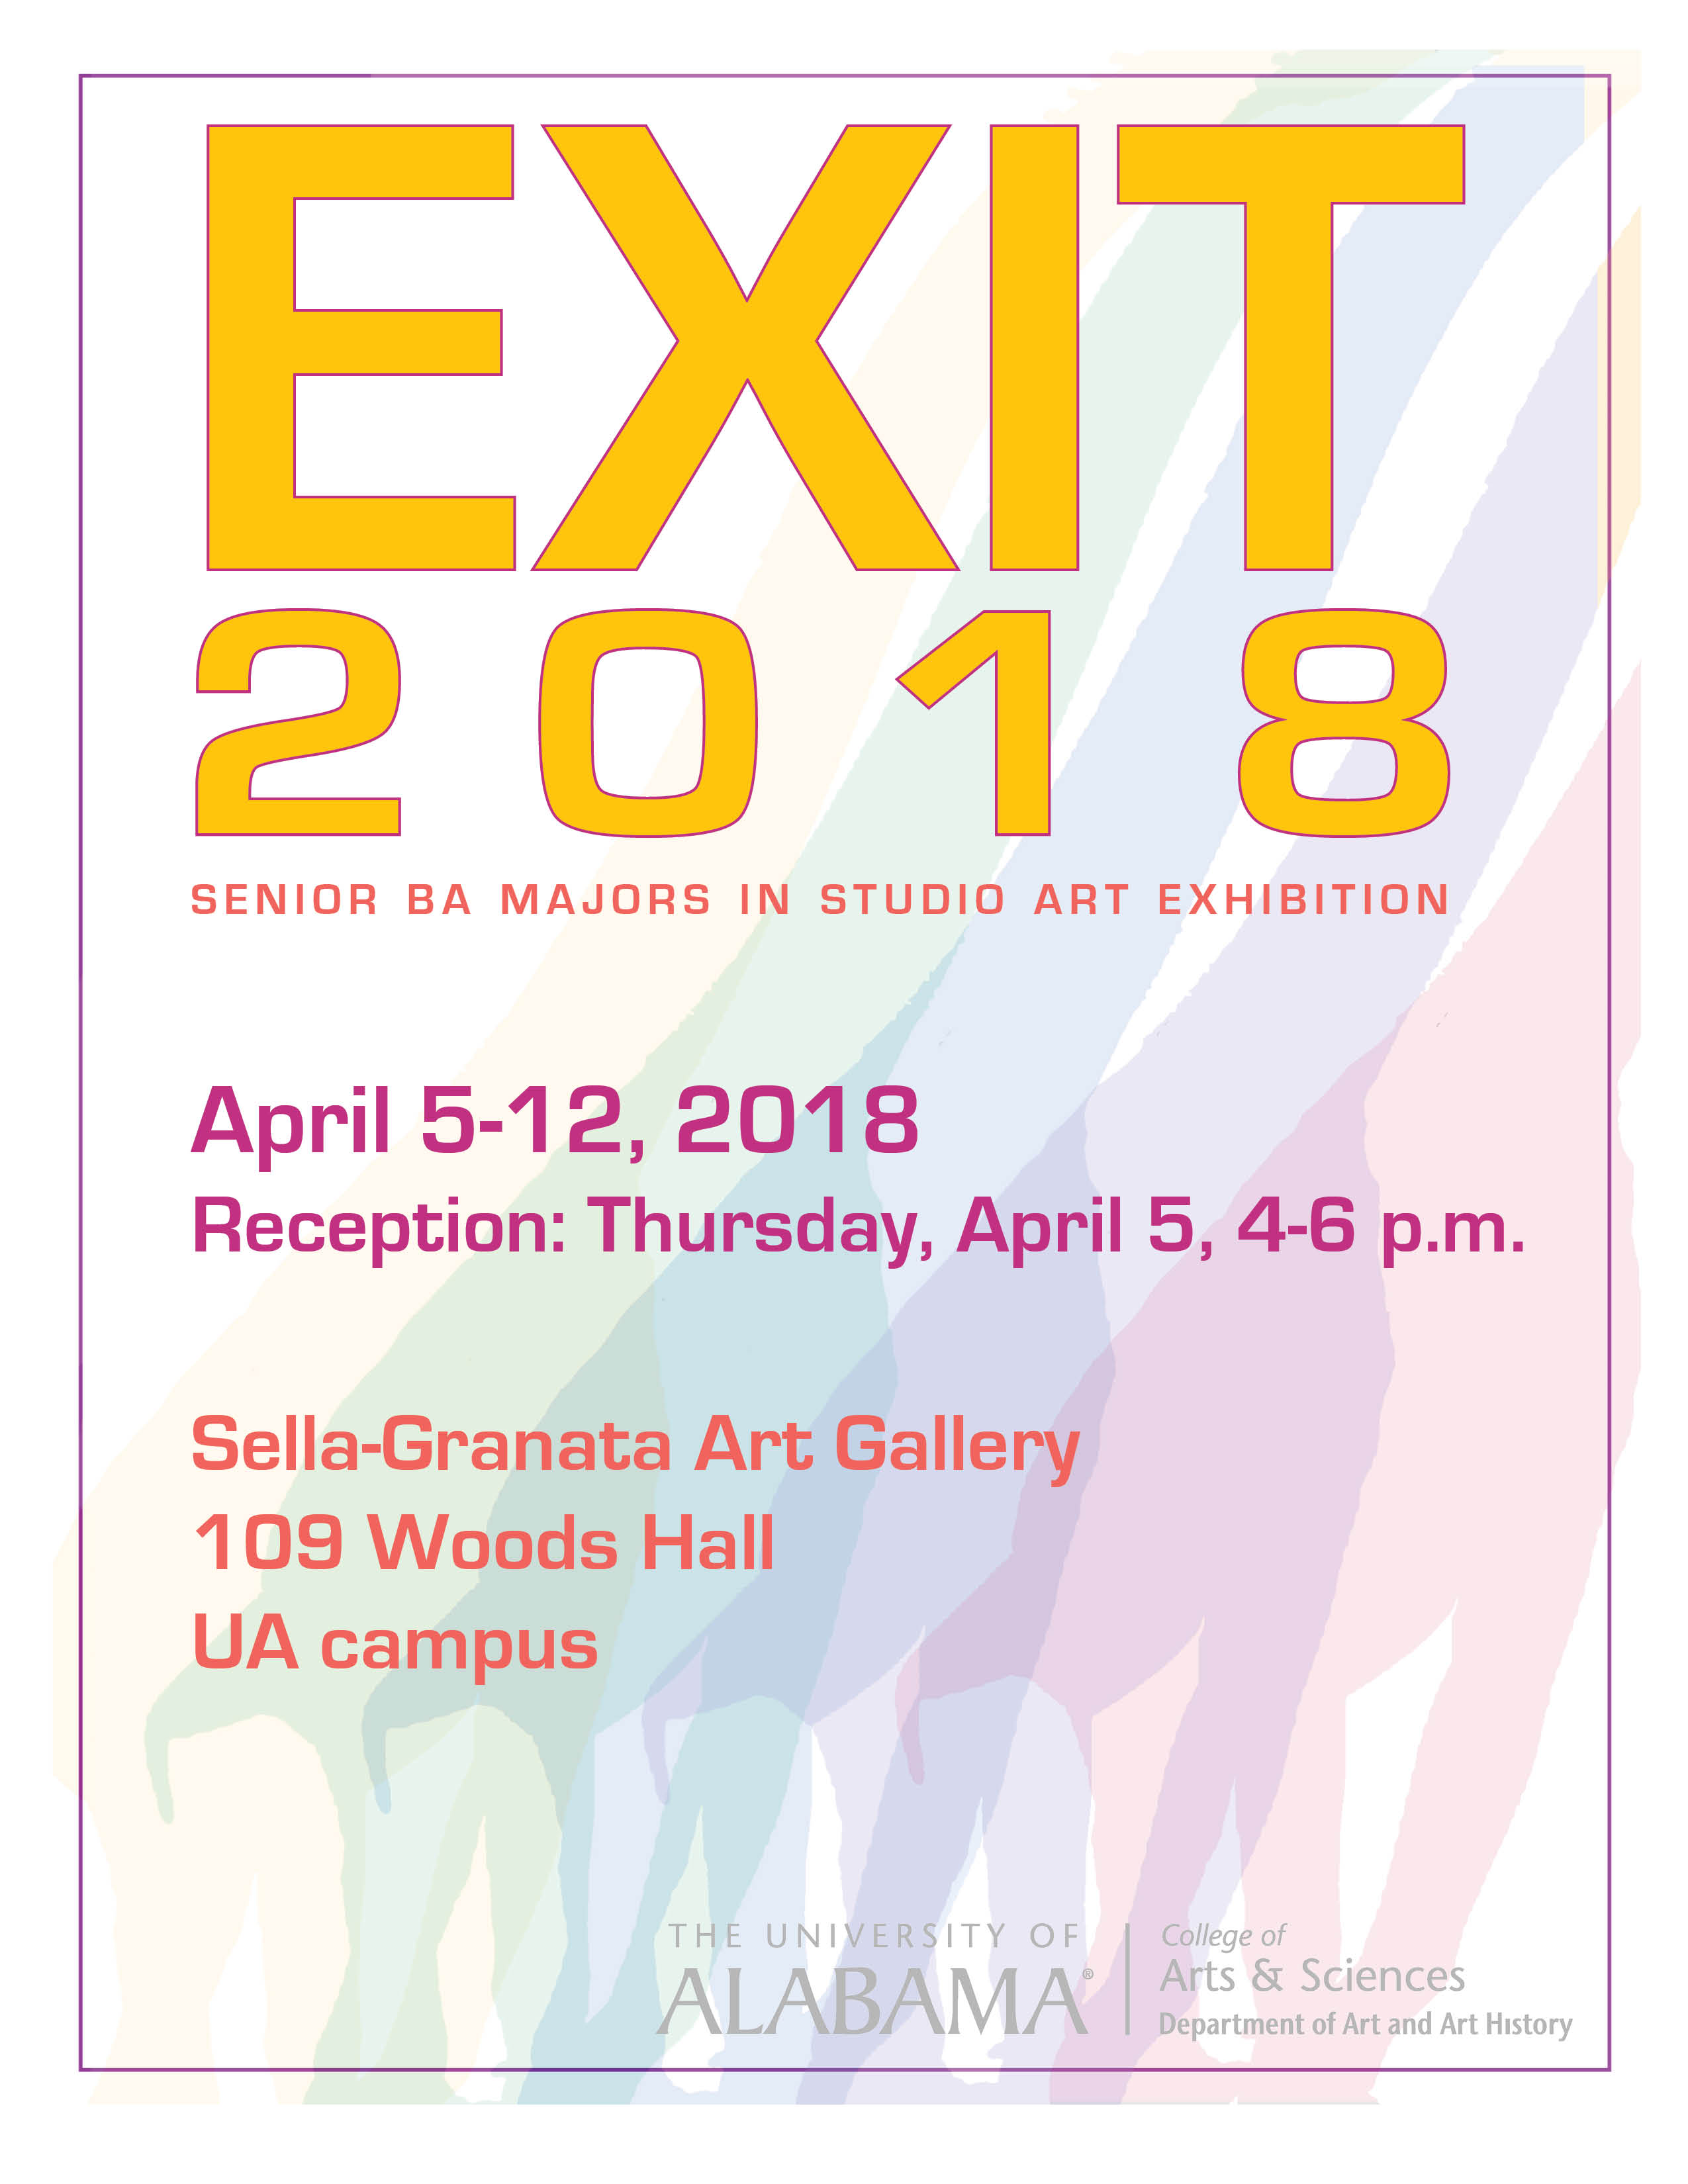 Poster for Annual BA Exit Show, Sella-Granata Art Gallery, APR 5-12, 2018